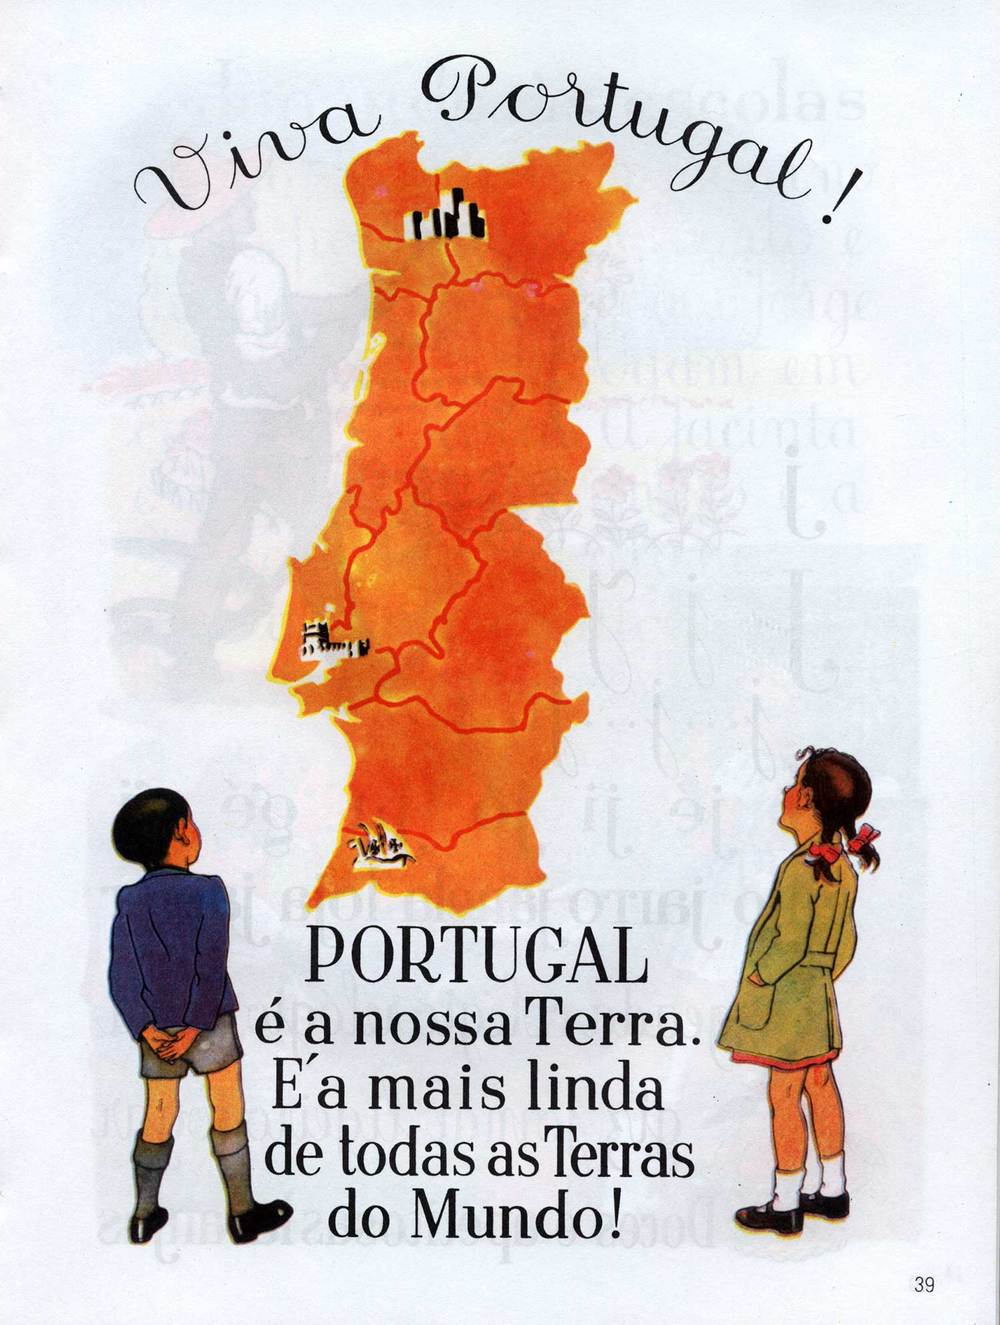 Viva Portuga! Portugal é a nossa terra. É a mais linda de todas as Terras do Mundo!  (Viva Portugal! Portugal is our land. It's the most beautiful of all the world's lands.)